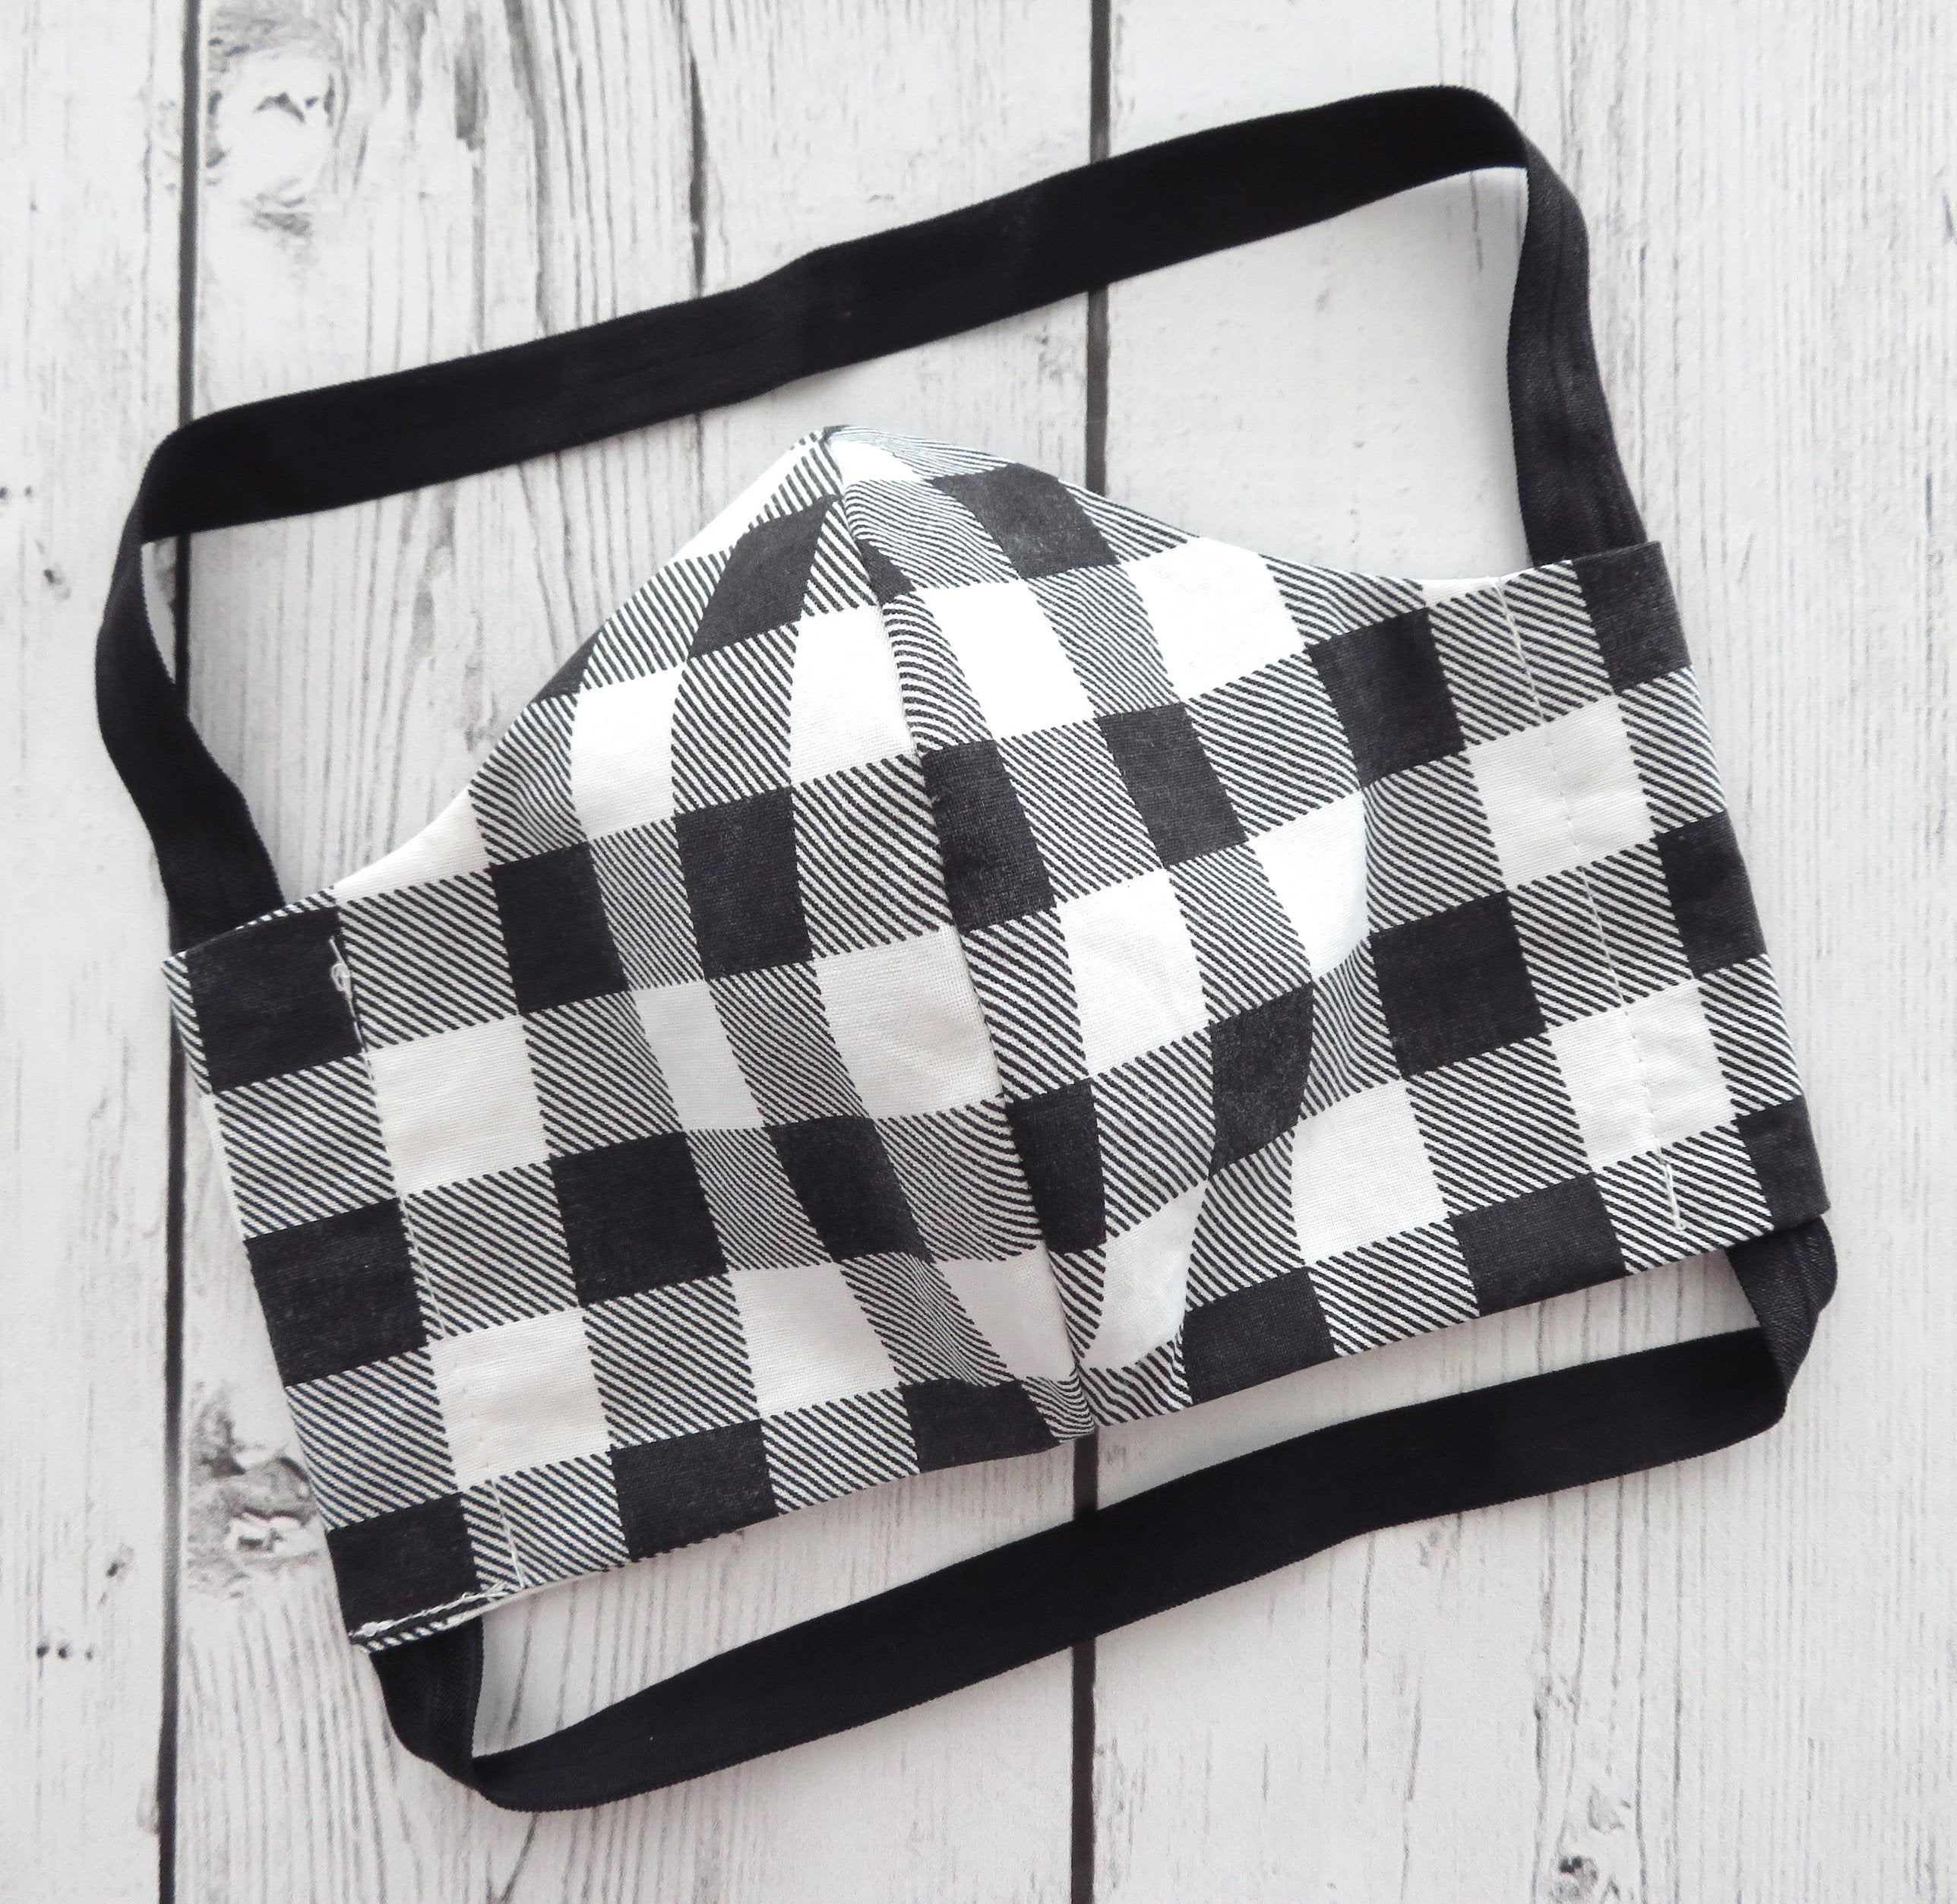 Adult Face Mask in Black and White Buffalo Check - READY TO SHIP from usa! - handmade cotton face mask, washable and re-usable, ear saver